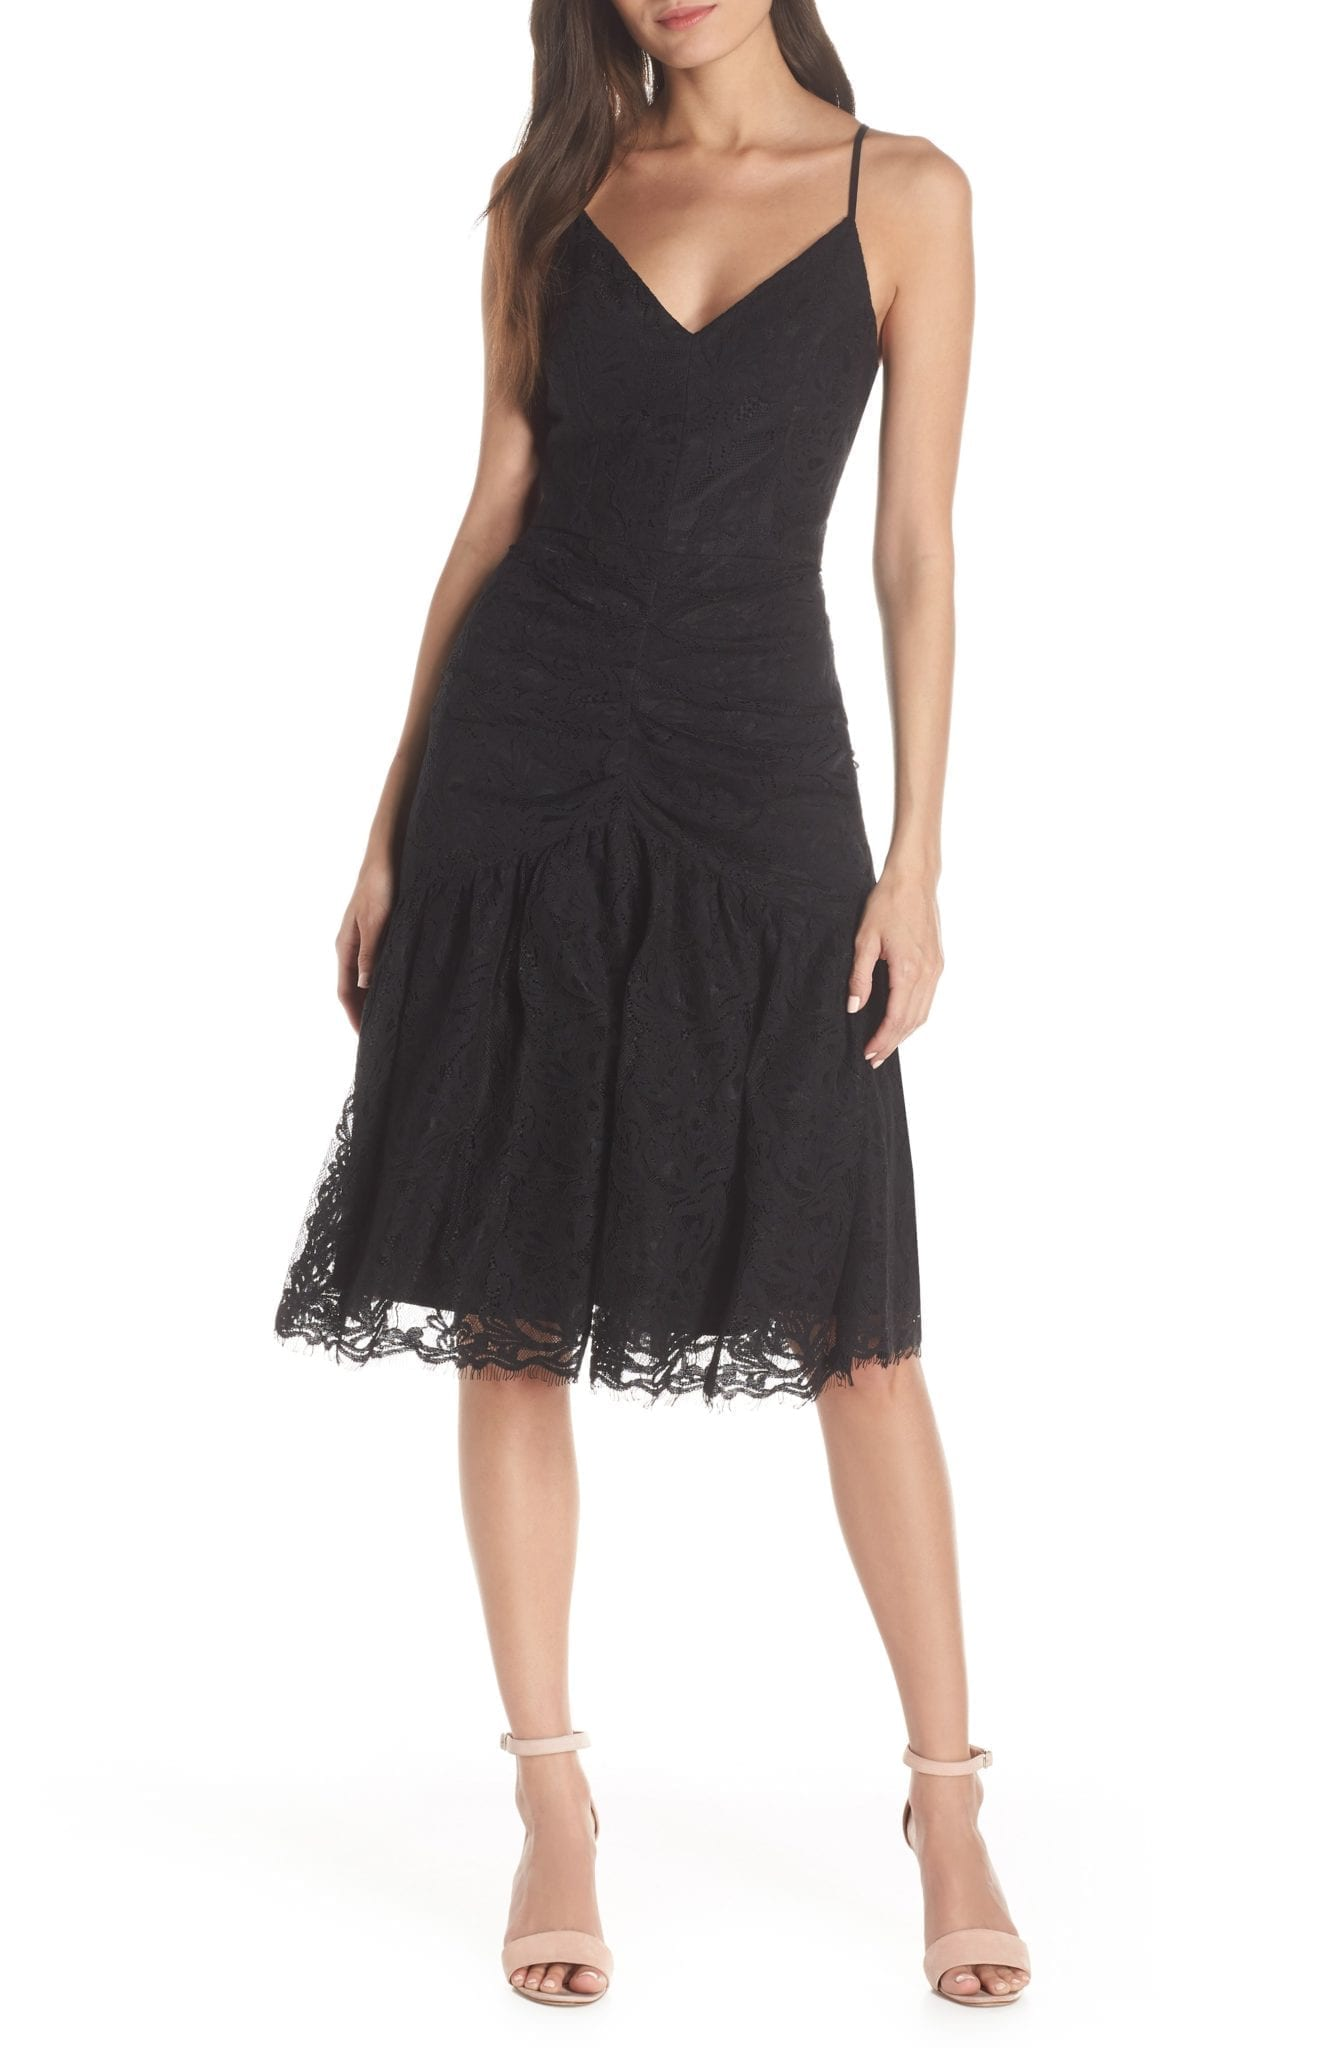 d02d741623b5 HARLYN Ruched Front V-Neck Lace Midi Black Dress - We Select Dresses